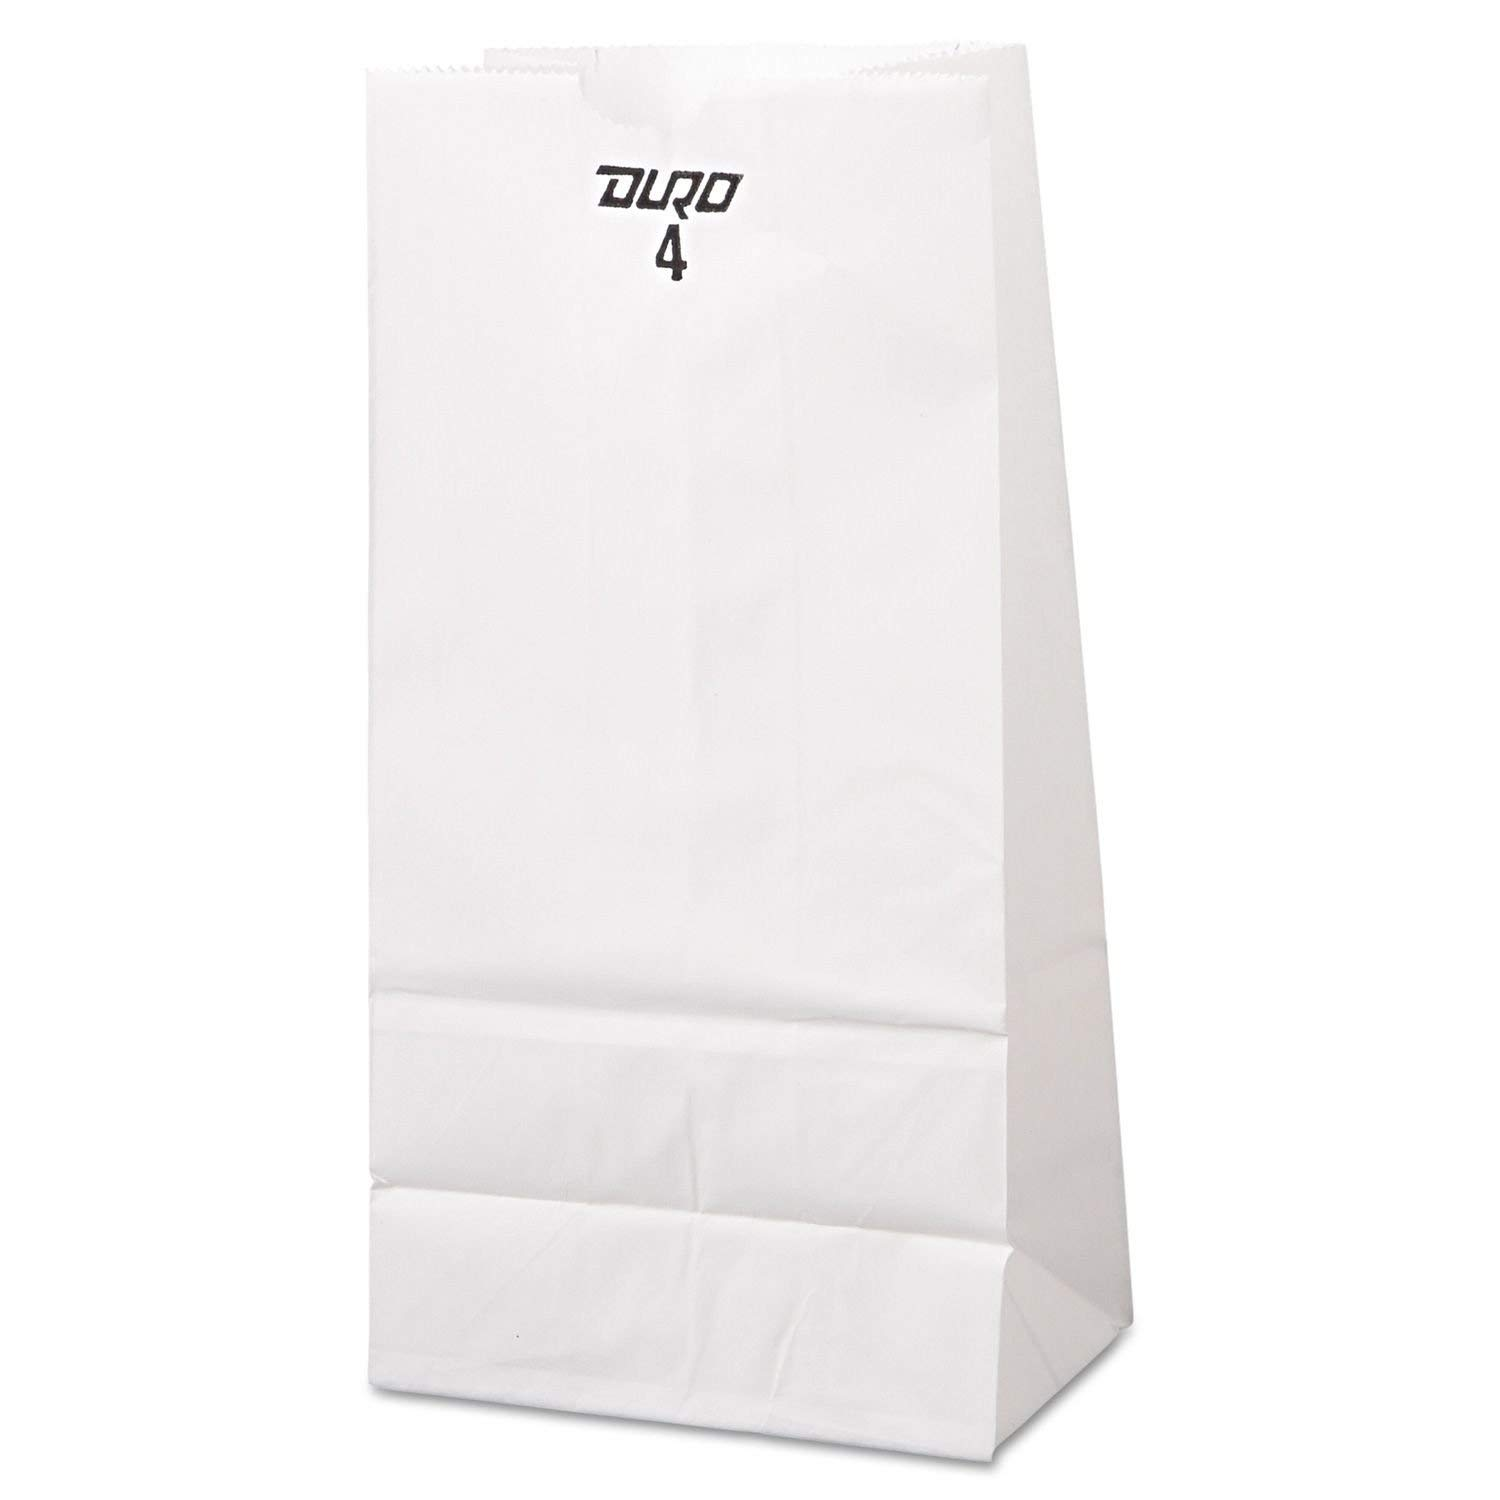 Bolsas de papel blanco (500 ct.)-30 lb por Home to Deals